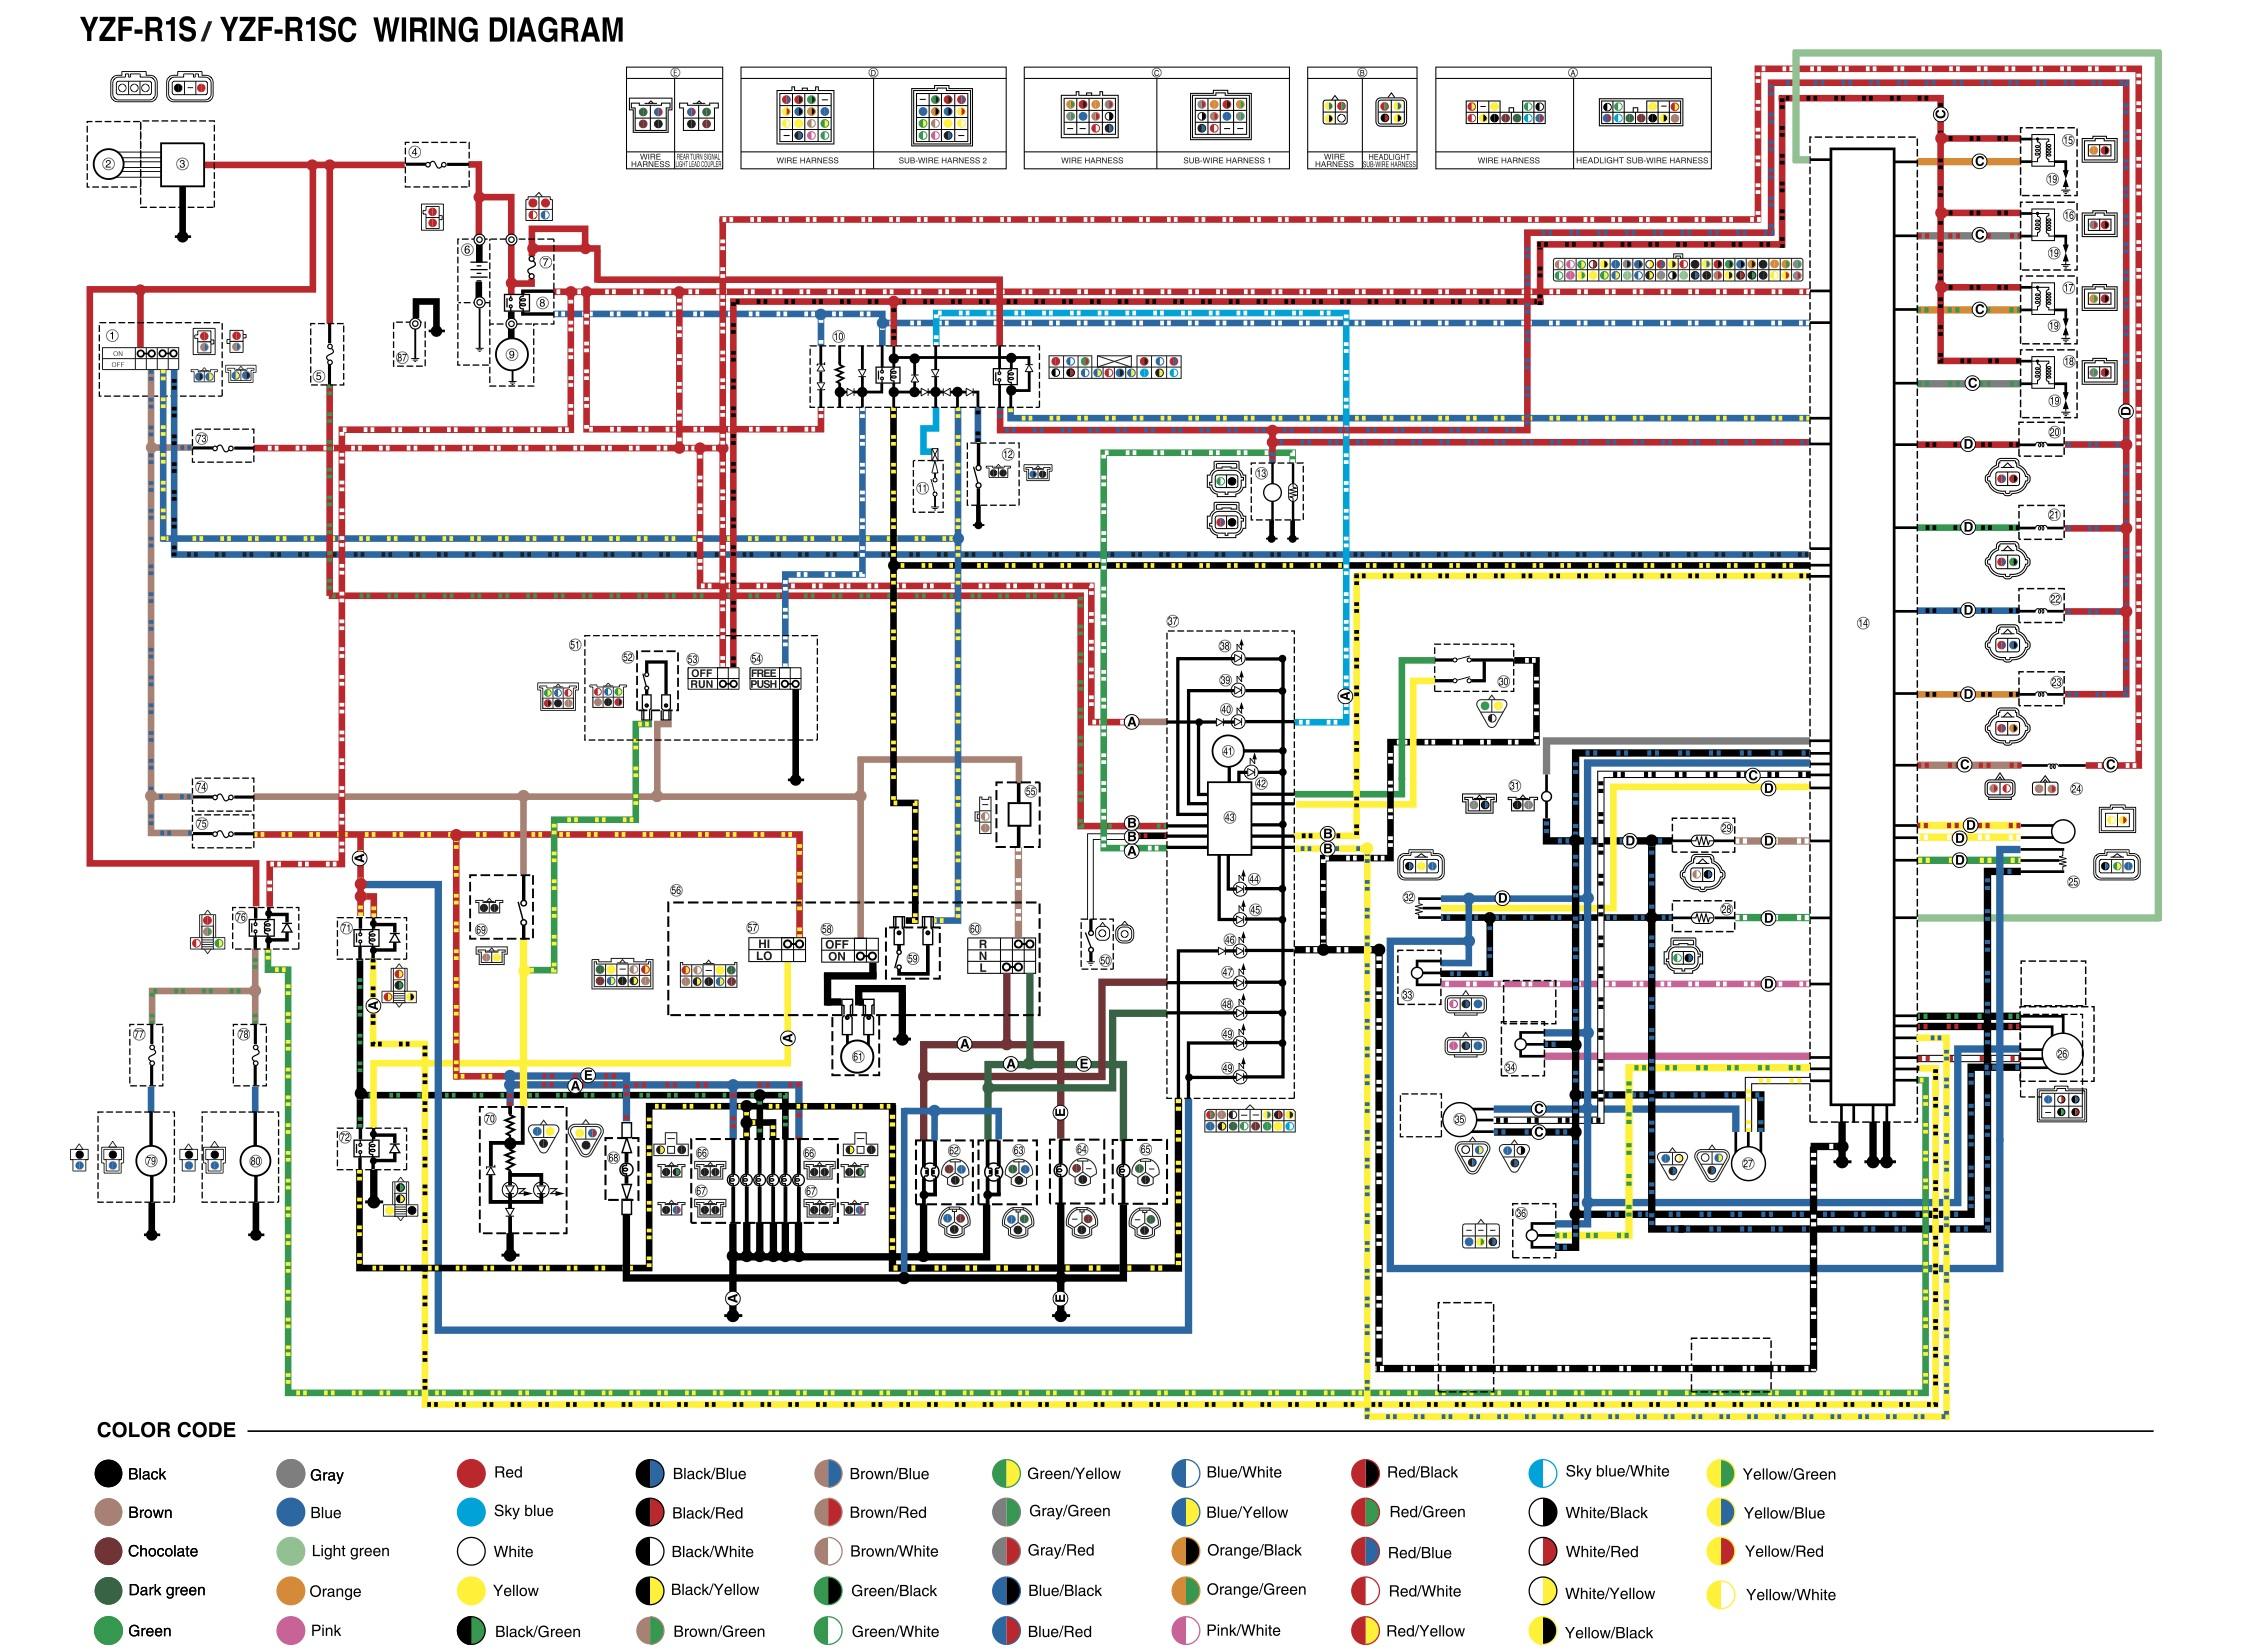 Yamaha Rhino Ignition Switch Wiring Diagram Starting Know About Ford 5000 Free 1999 R6 2000 Ecu U2022 Mifinder Co